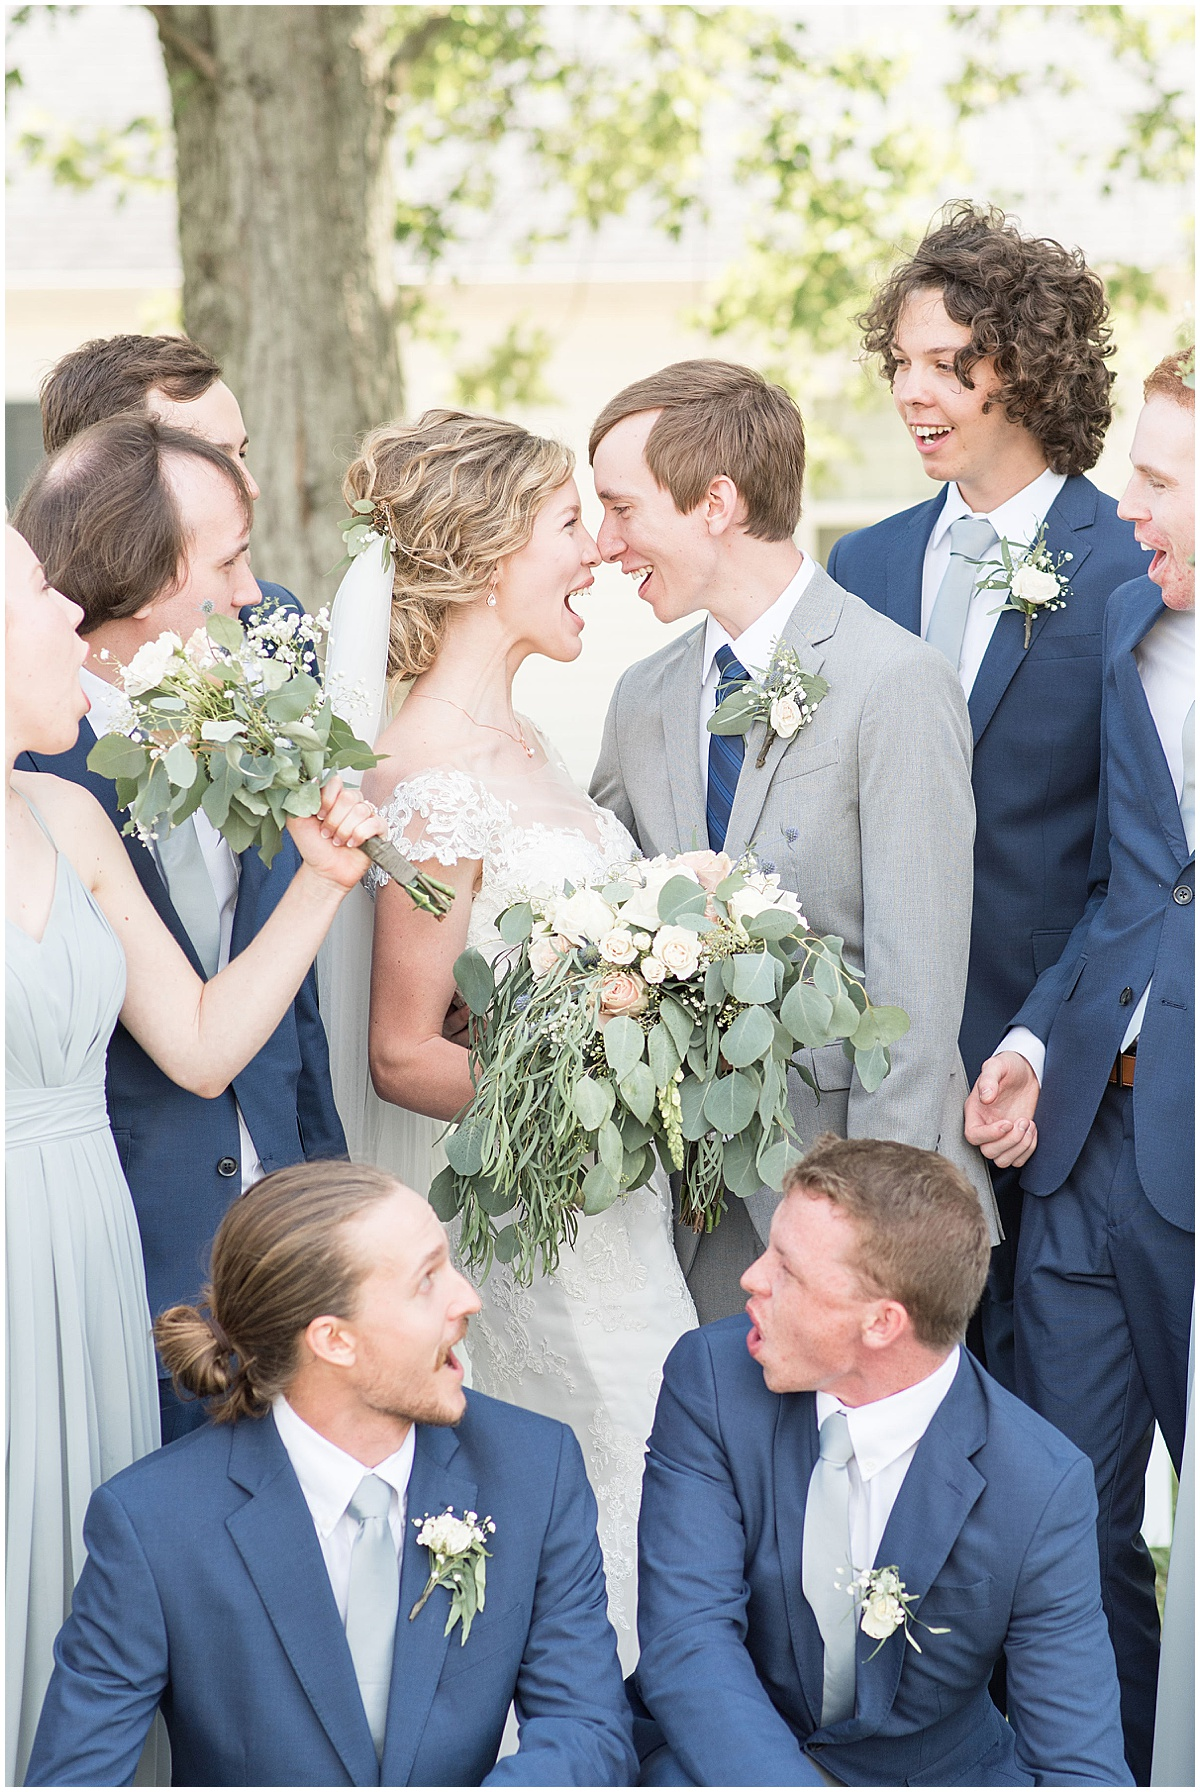 Bridal party photos at wedding at The Matterhorn in Elkhart, Indiana by Victoria Rayburn Photography